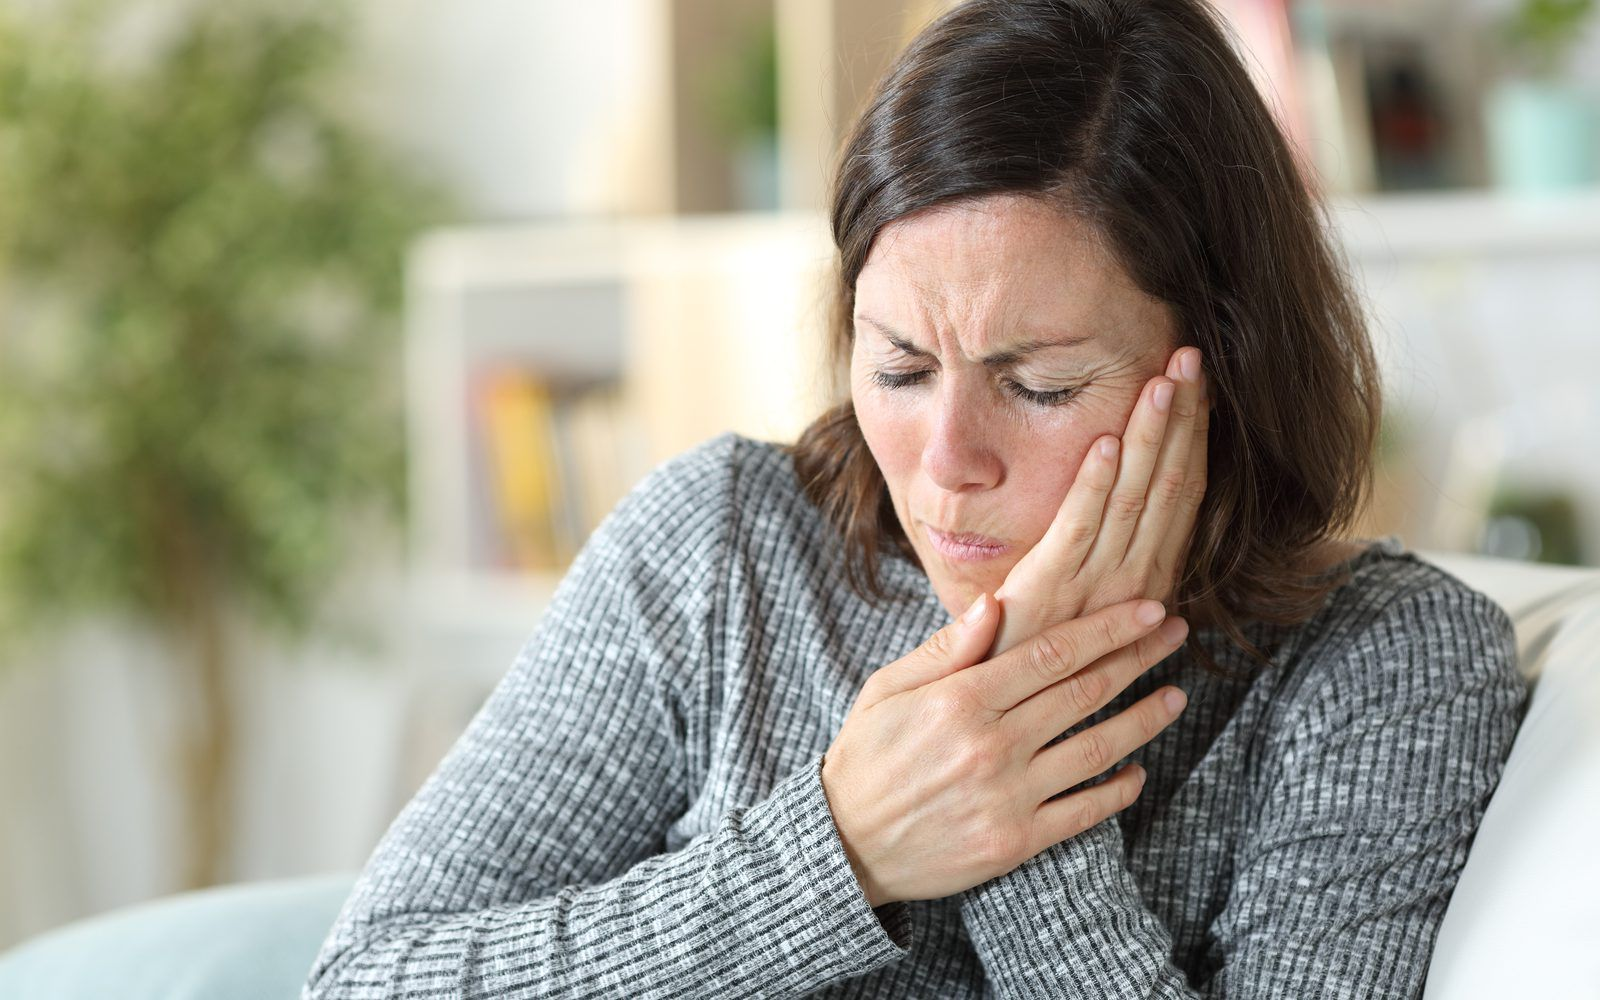 Woman holding face in pain